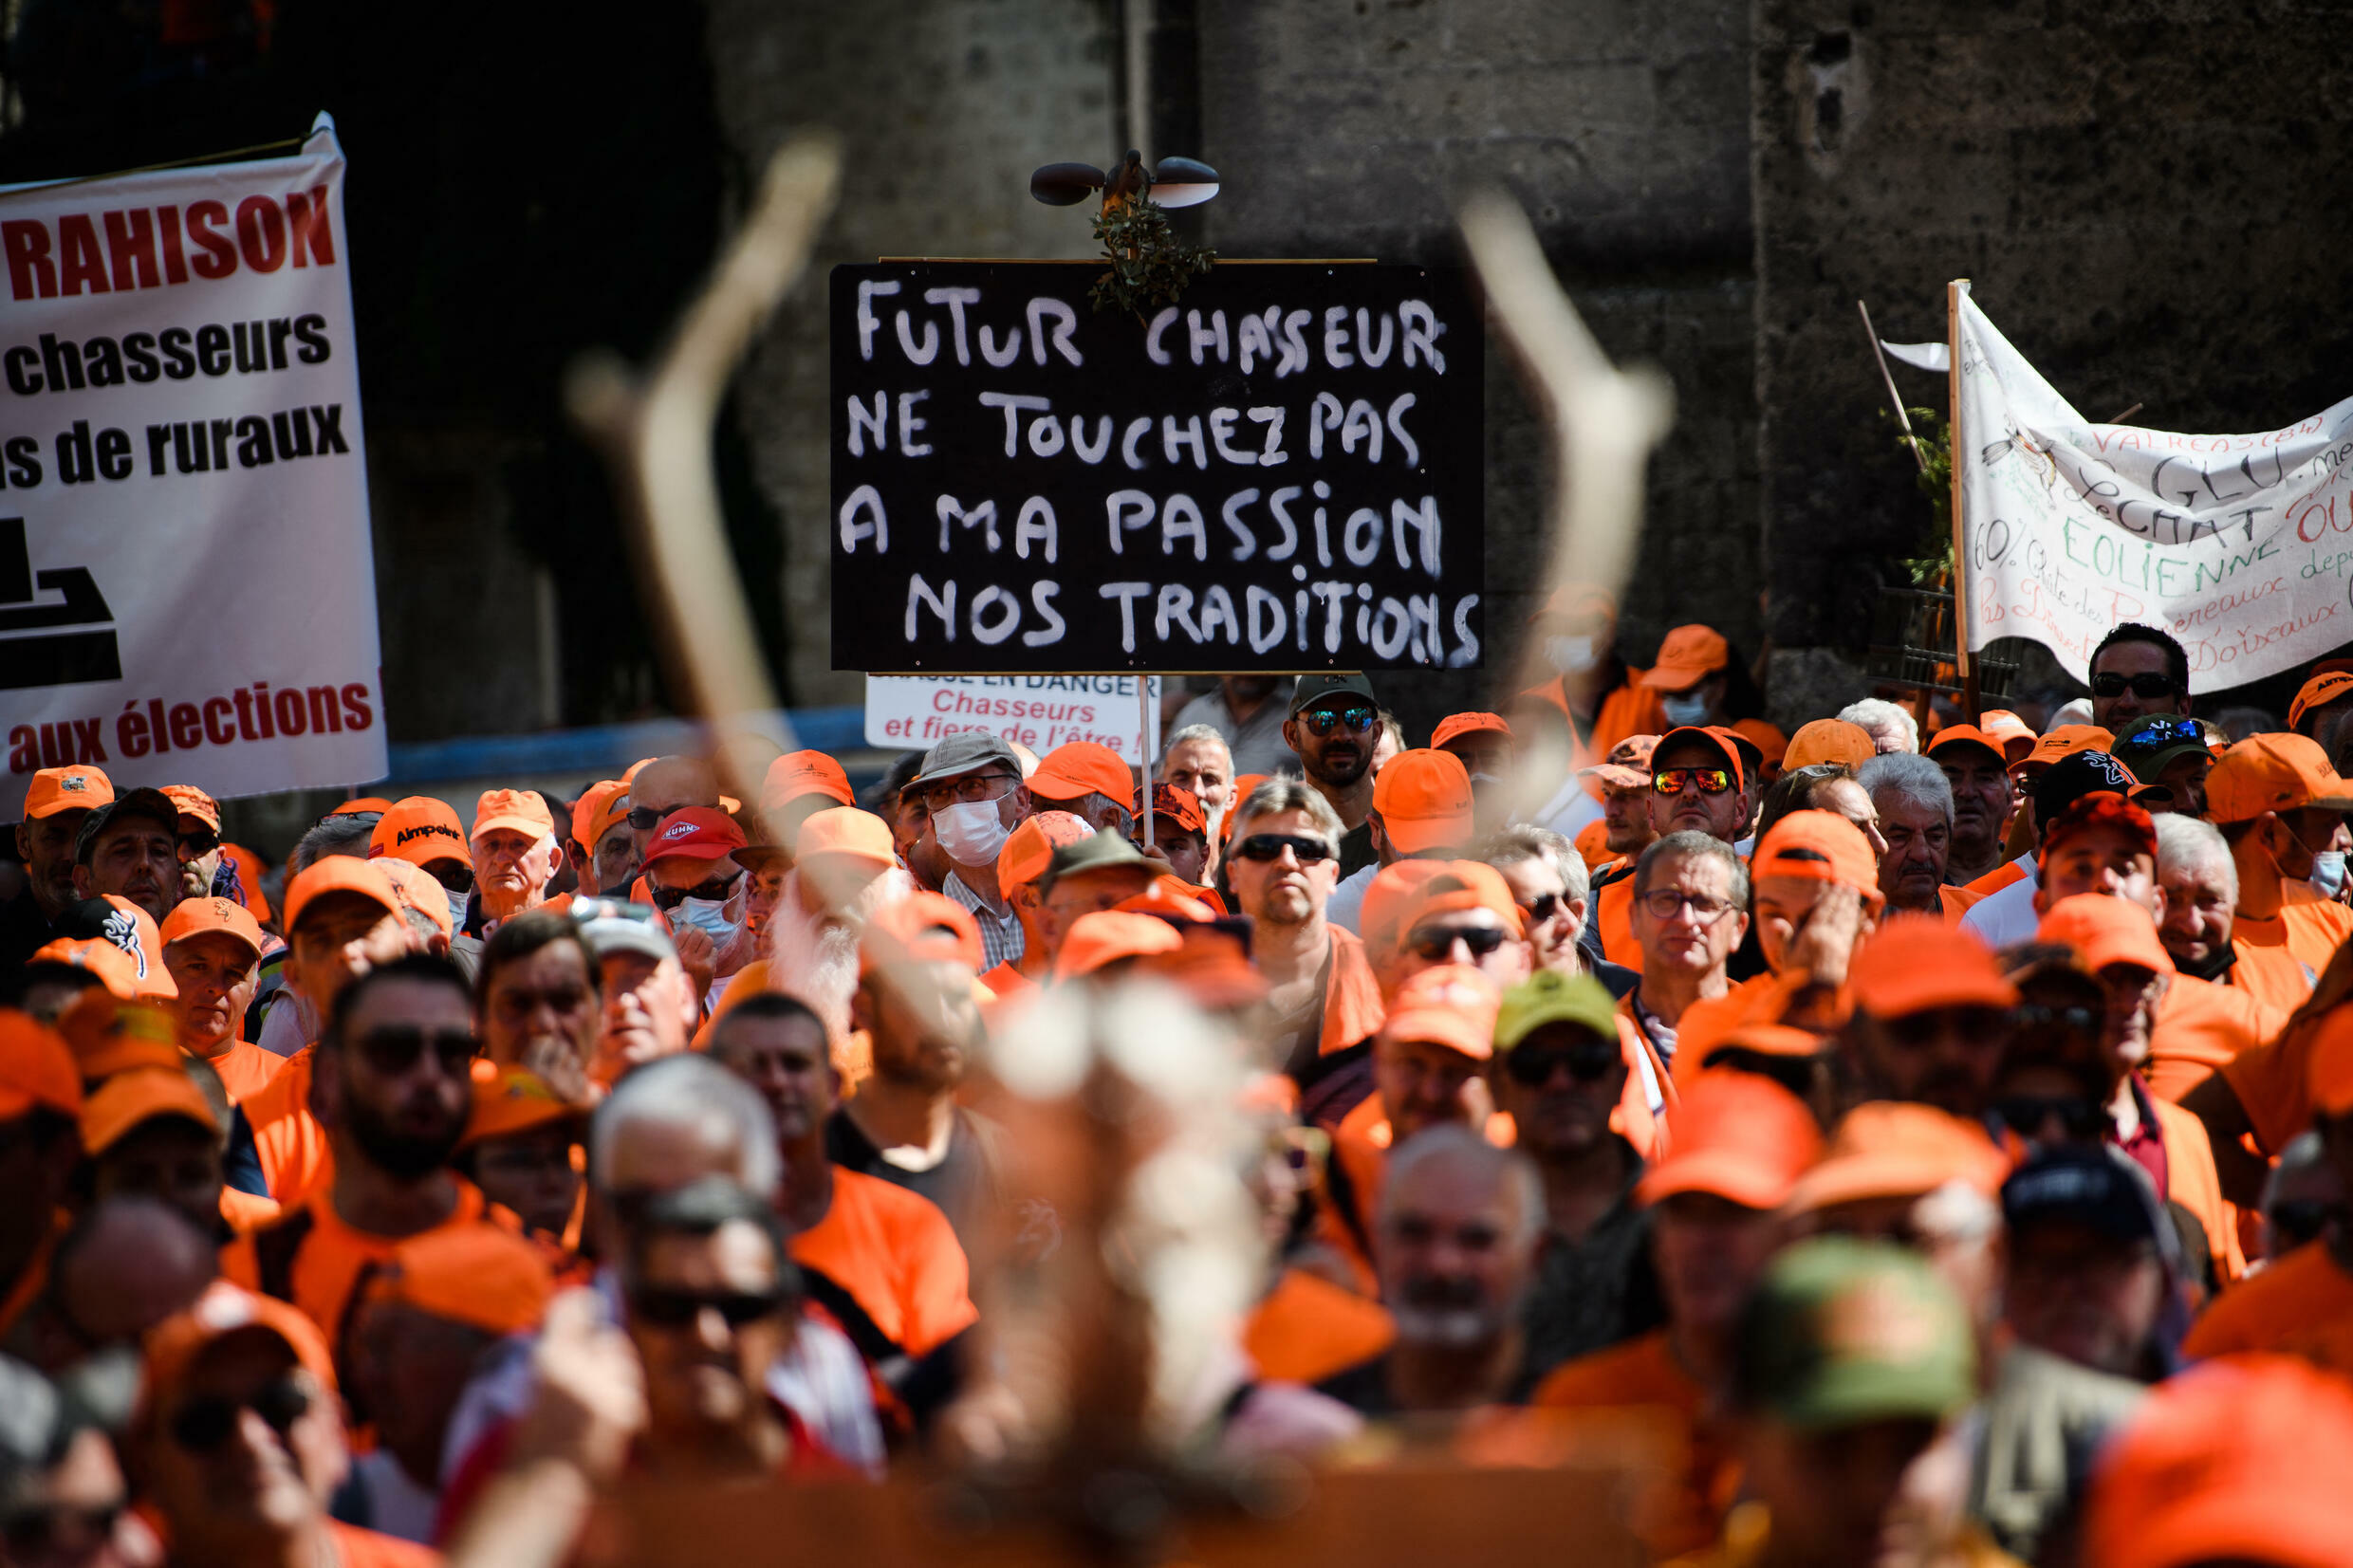 chasseurs france